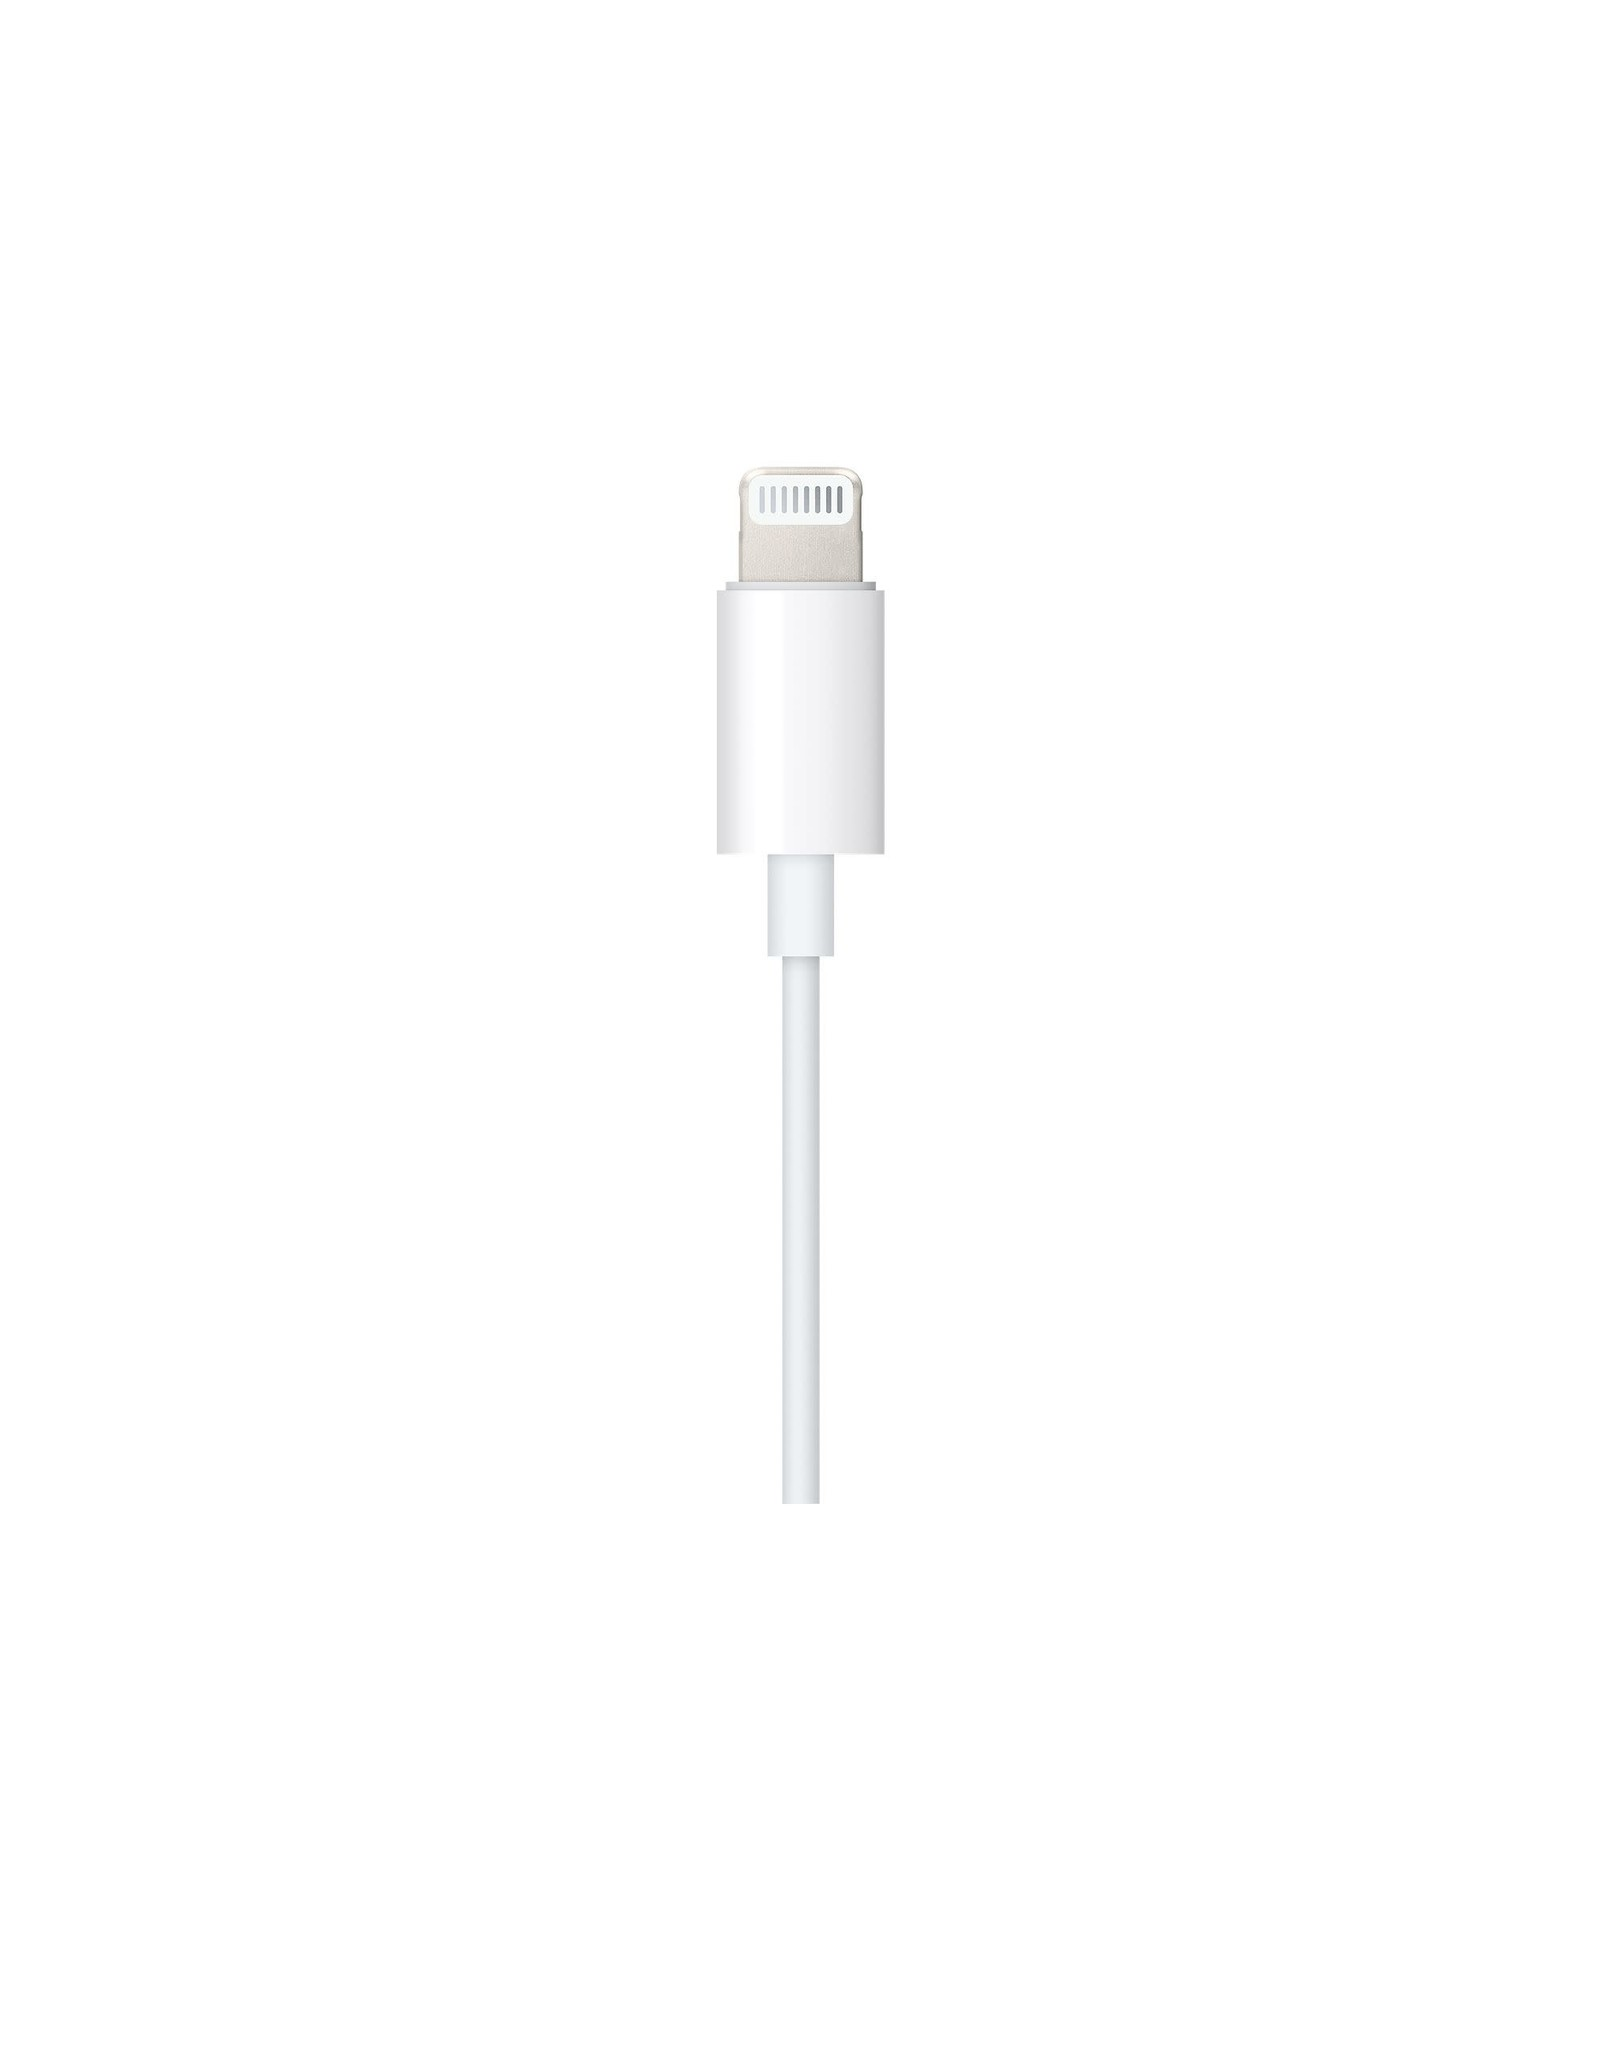 Apple Lightning to 3.5 mm Audio Cable (1.2m) - White